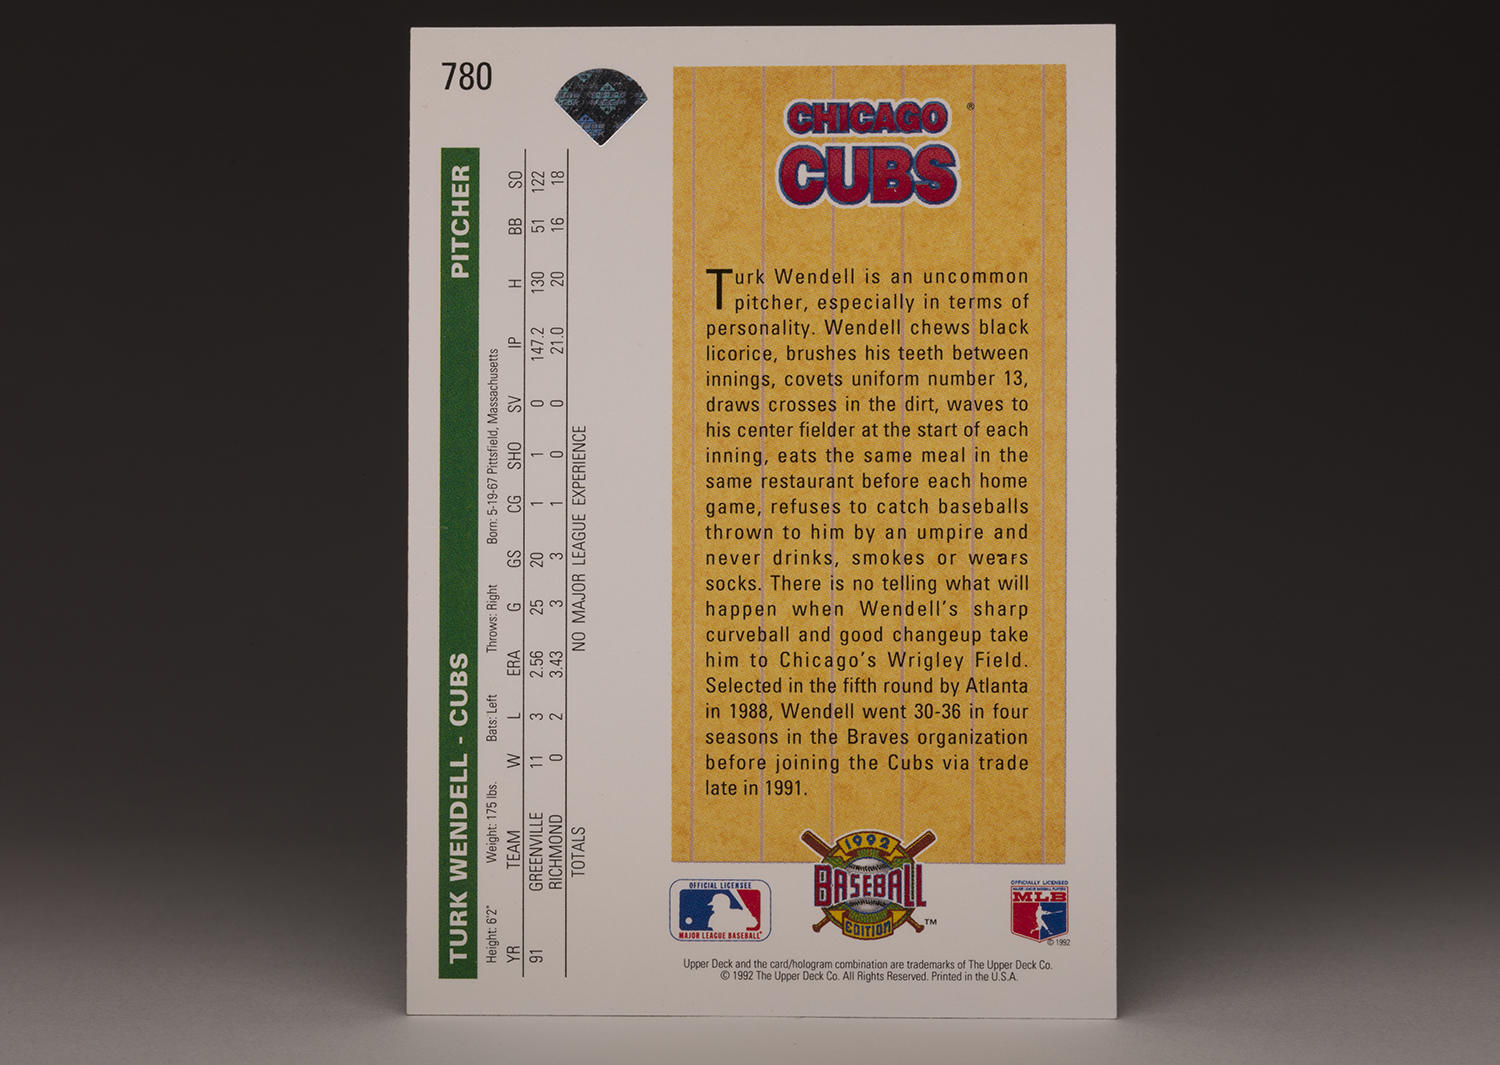 The reverse side of Turk Wendell's 1992 Upper Deck card. (Milo Stewart Jr. / National Baseball Hall of Fame and Museum)